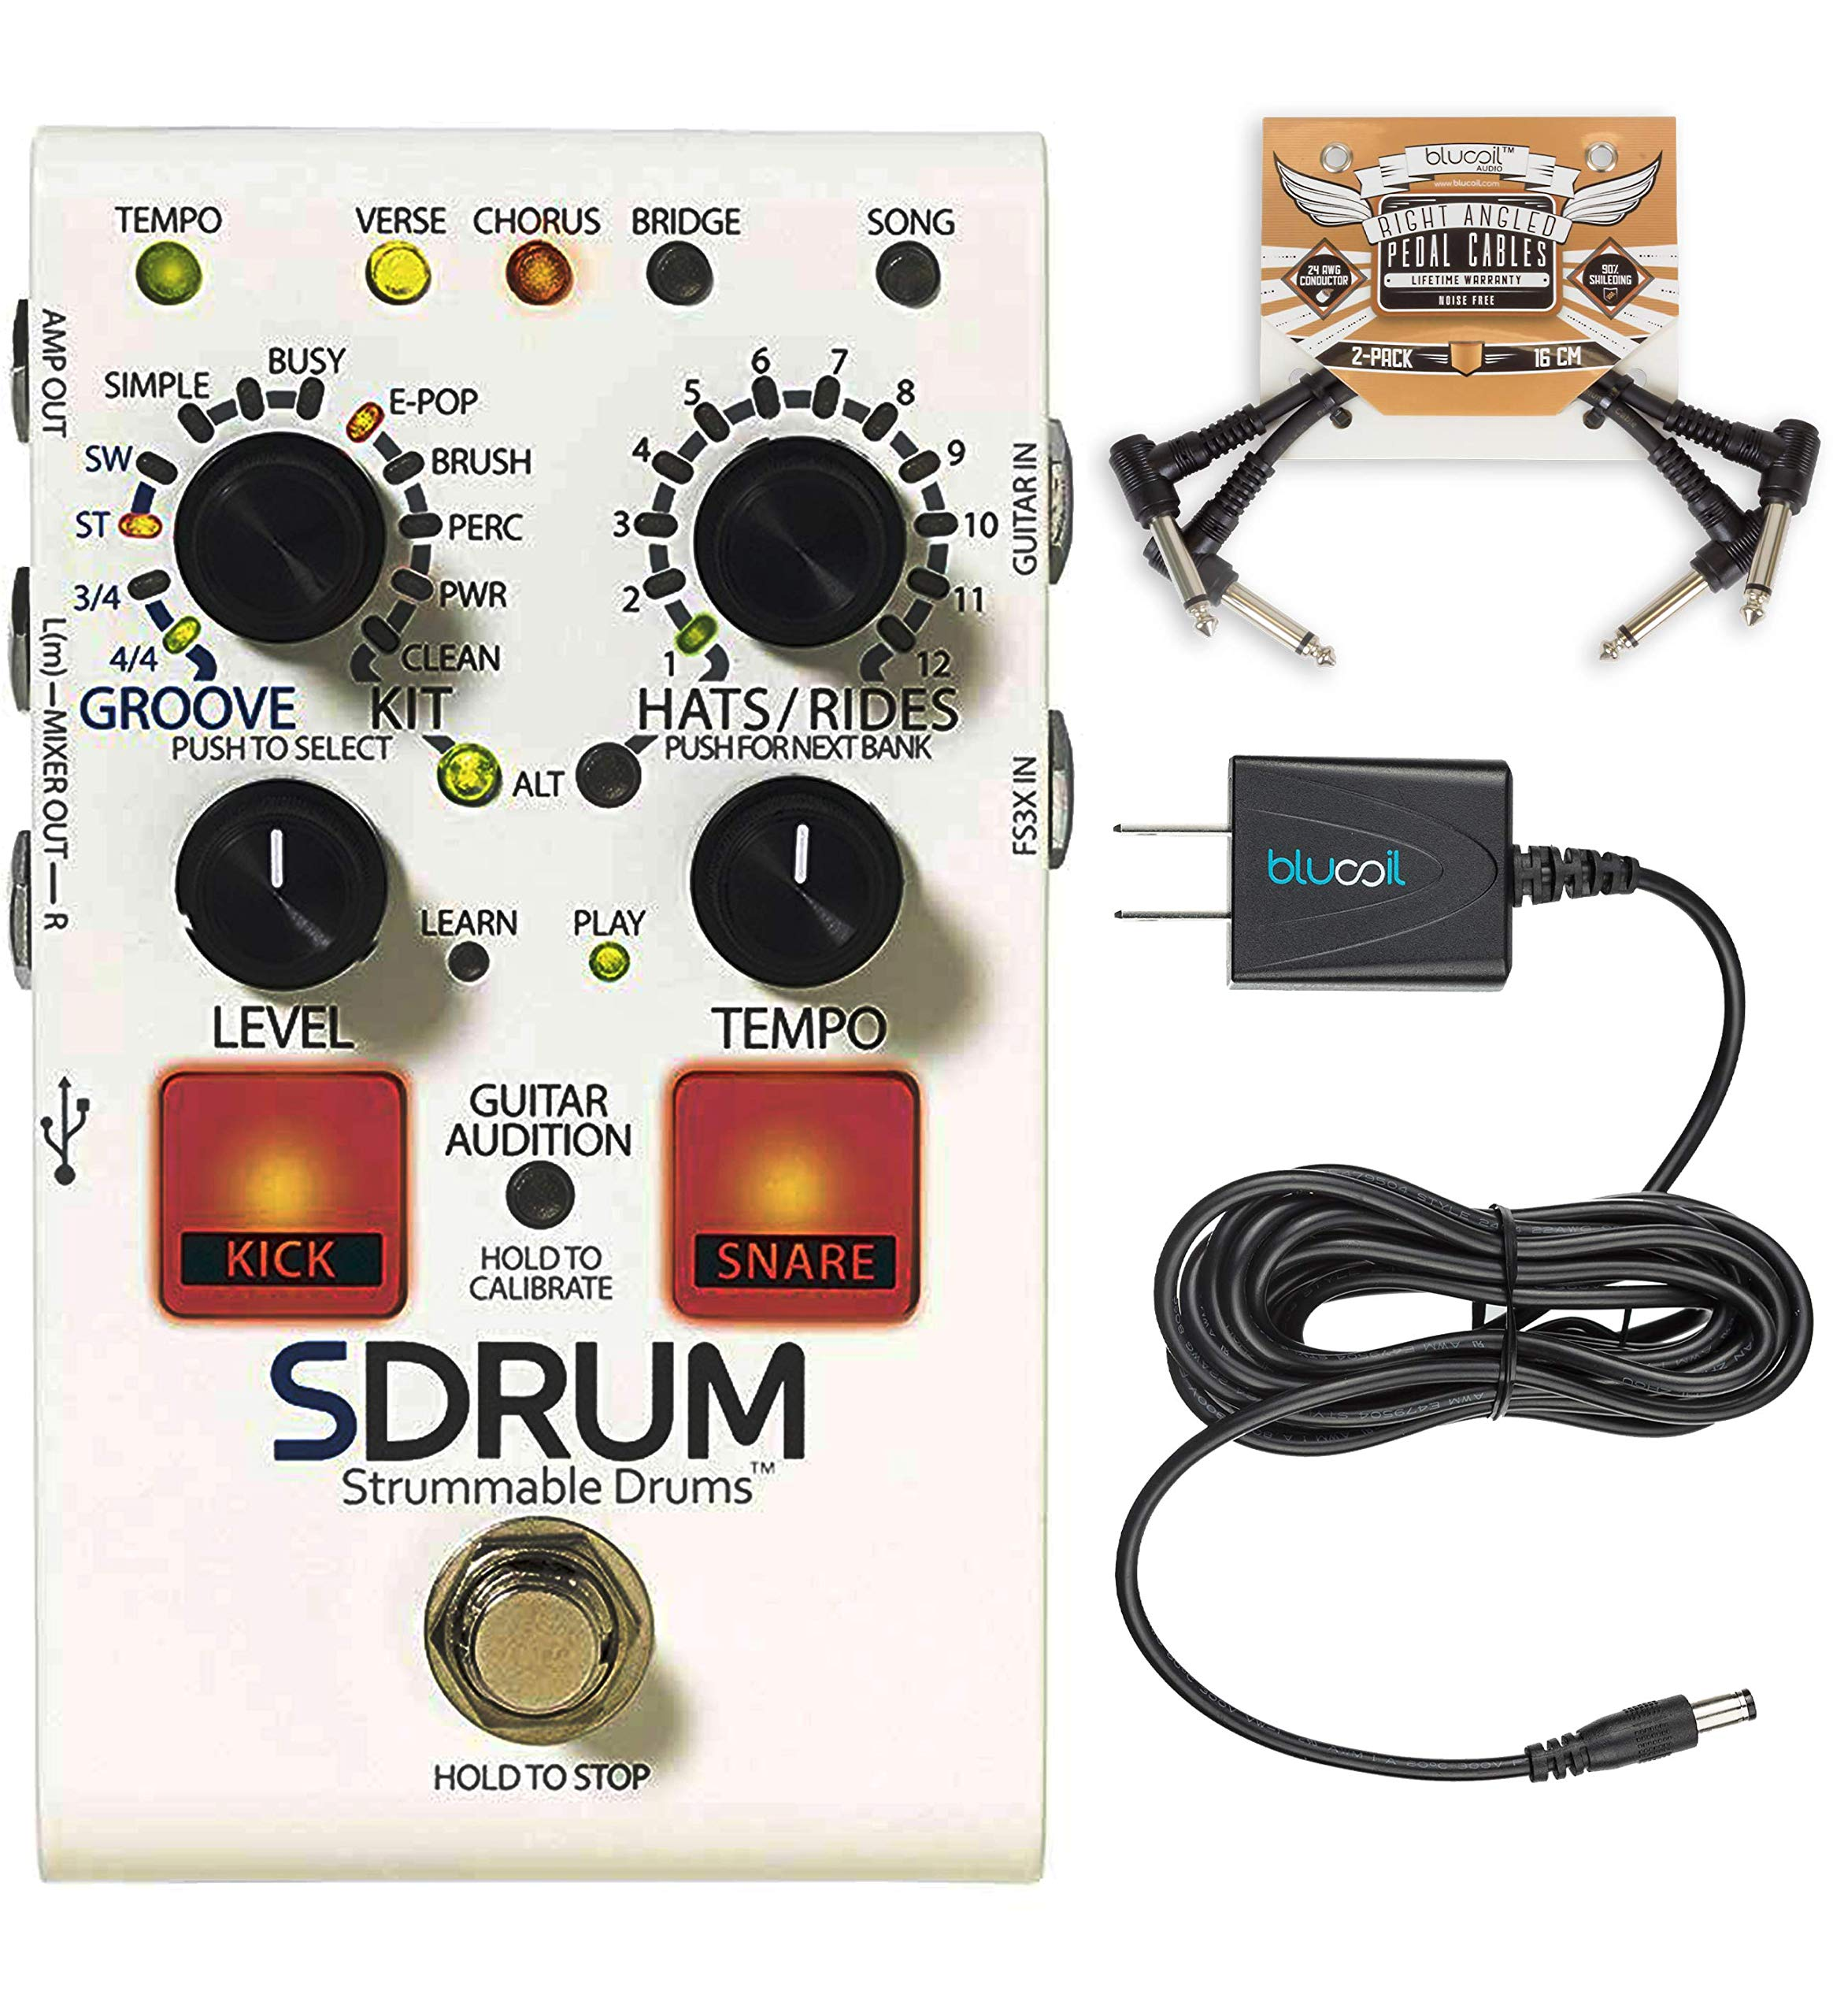 DigiTech SDRUM Auto-Drummer Drum Machine Pedal Bundle with Blucoil 9V DC Power Supply with Short Circuit Protection and 2-Pack of Pedal Patch Cables by blucoil